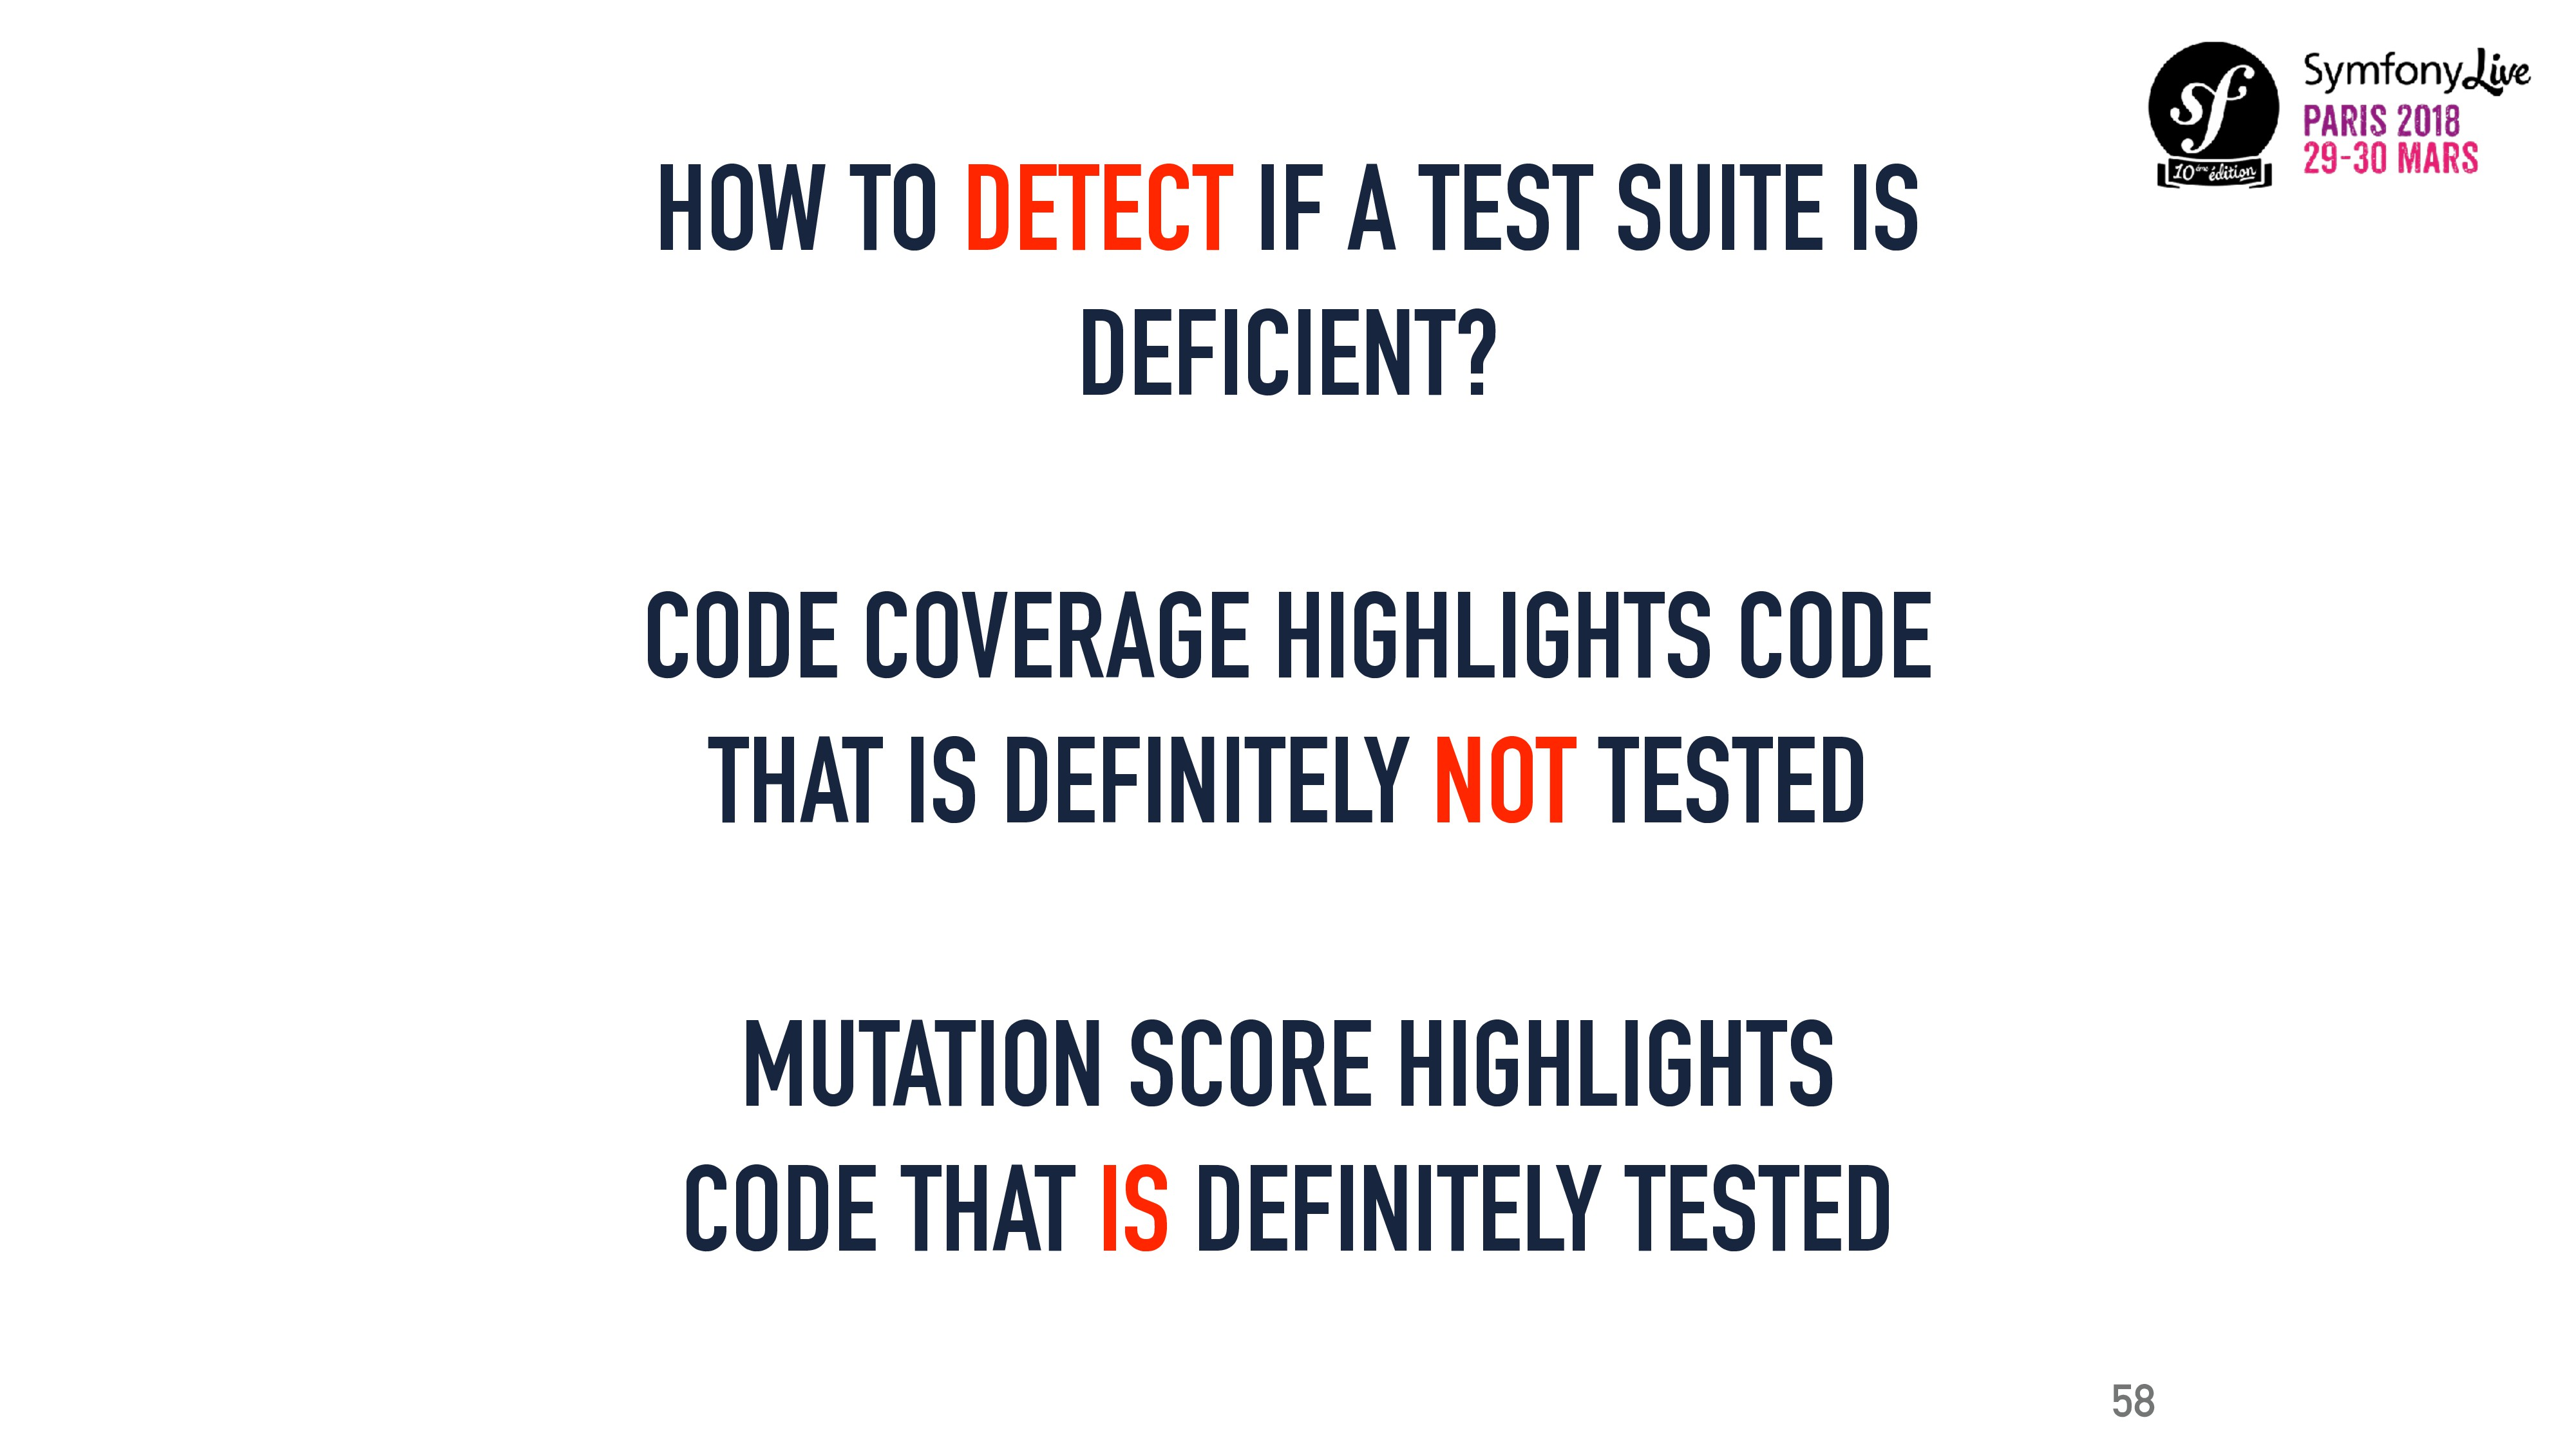 CODE COVERAGE HIGHLIGHTS CODE THAT IS DEFINITEL...